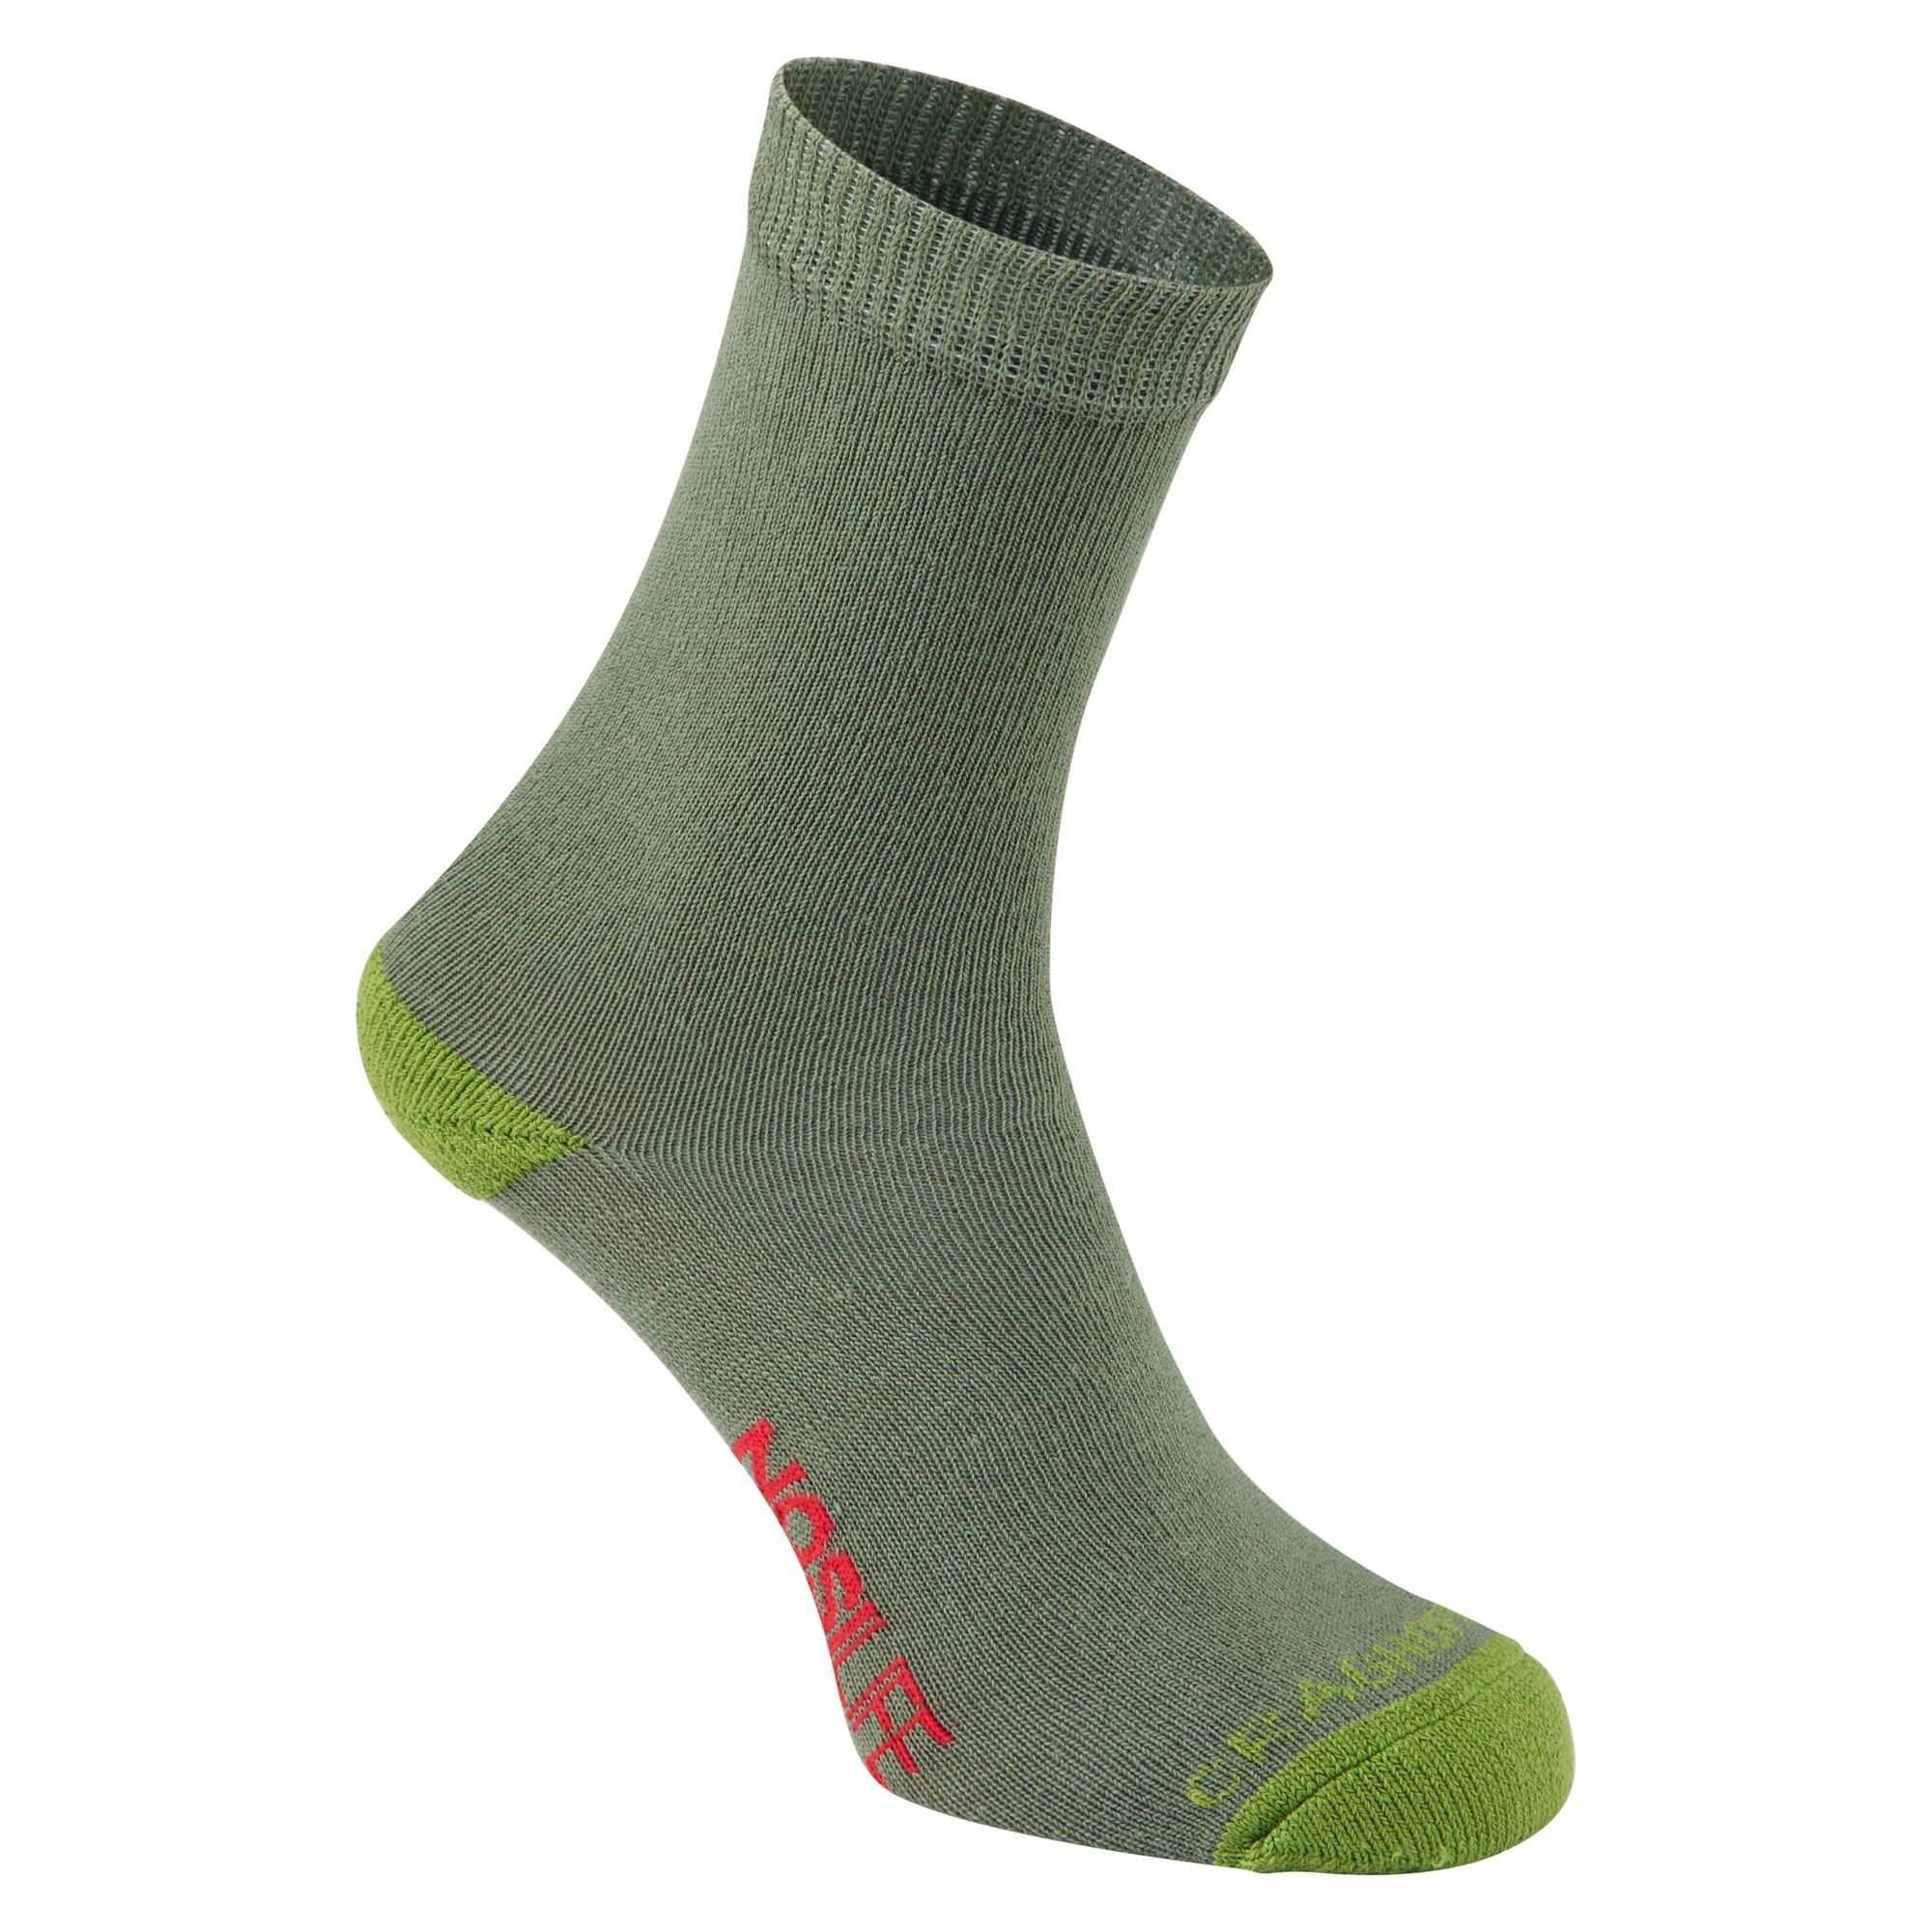 Craghoppers Kids Nosilife Travel Socken Grün, Daunen EU 19-23-UK 3-6 -Farbe Dar